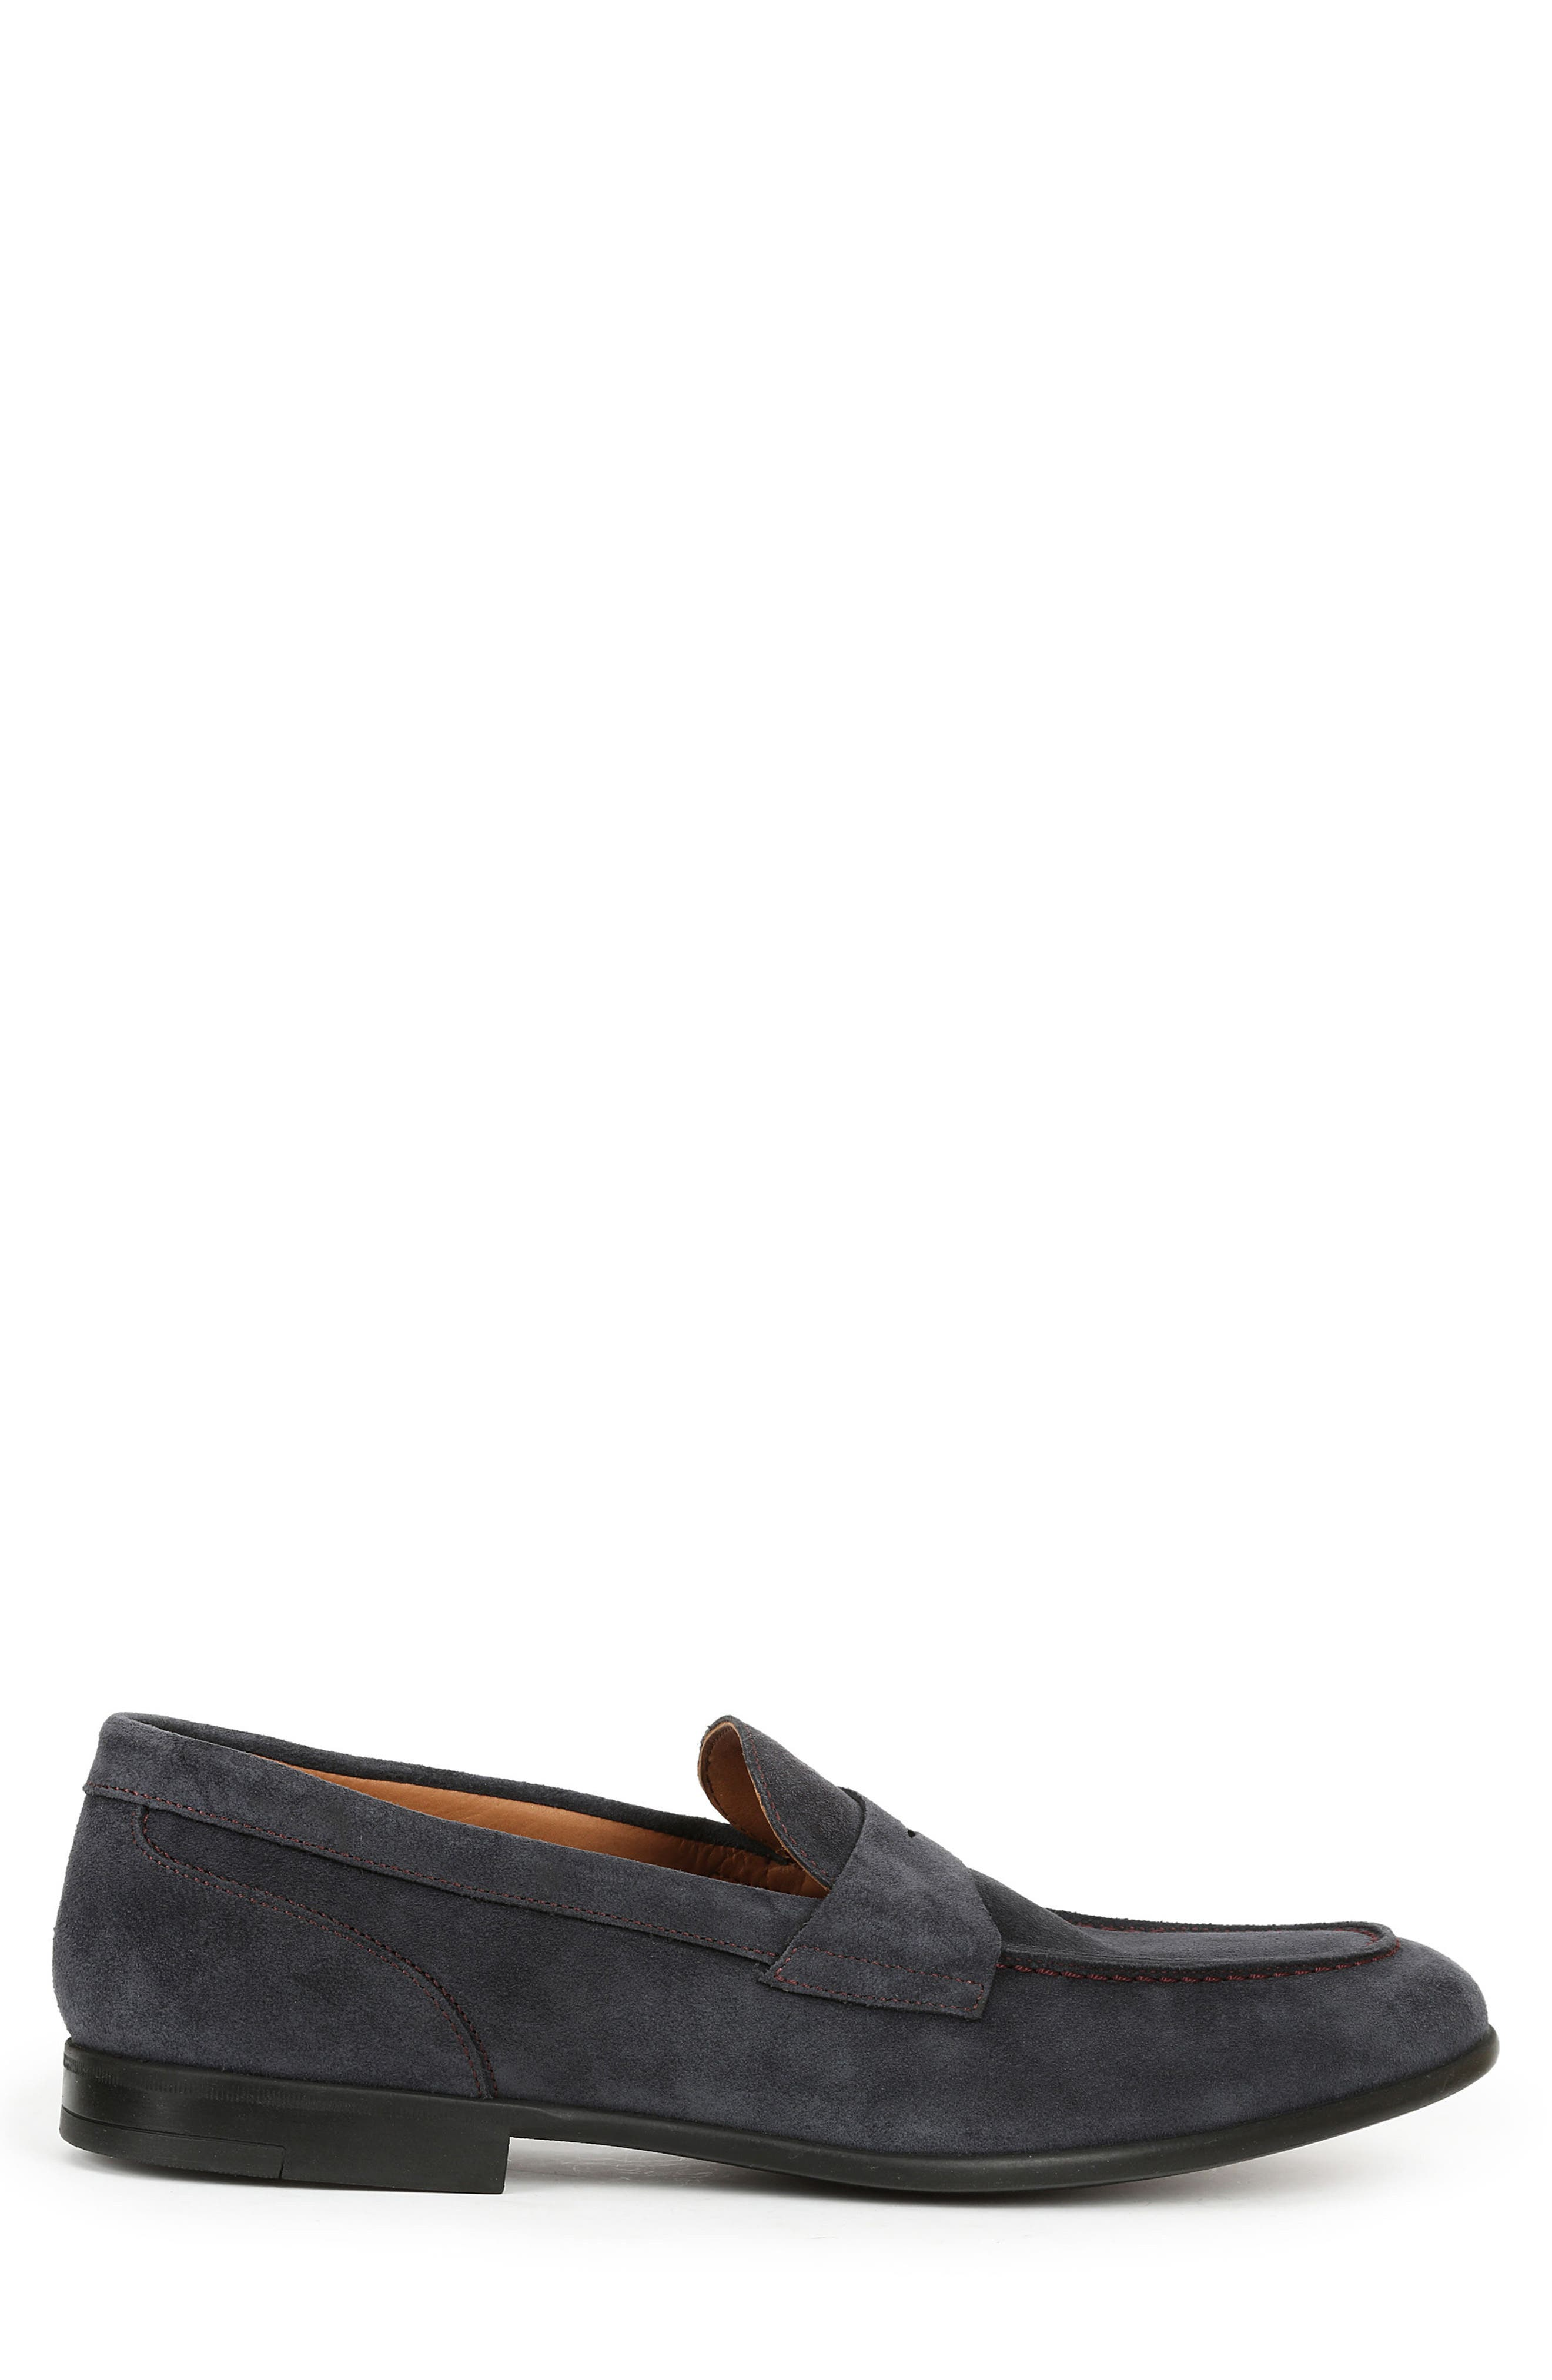 Silas Penny Loafer,                             Alternate thumbnail 4, color,                             Navy